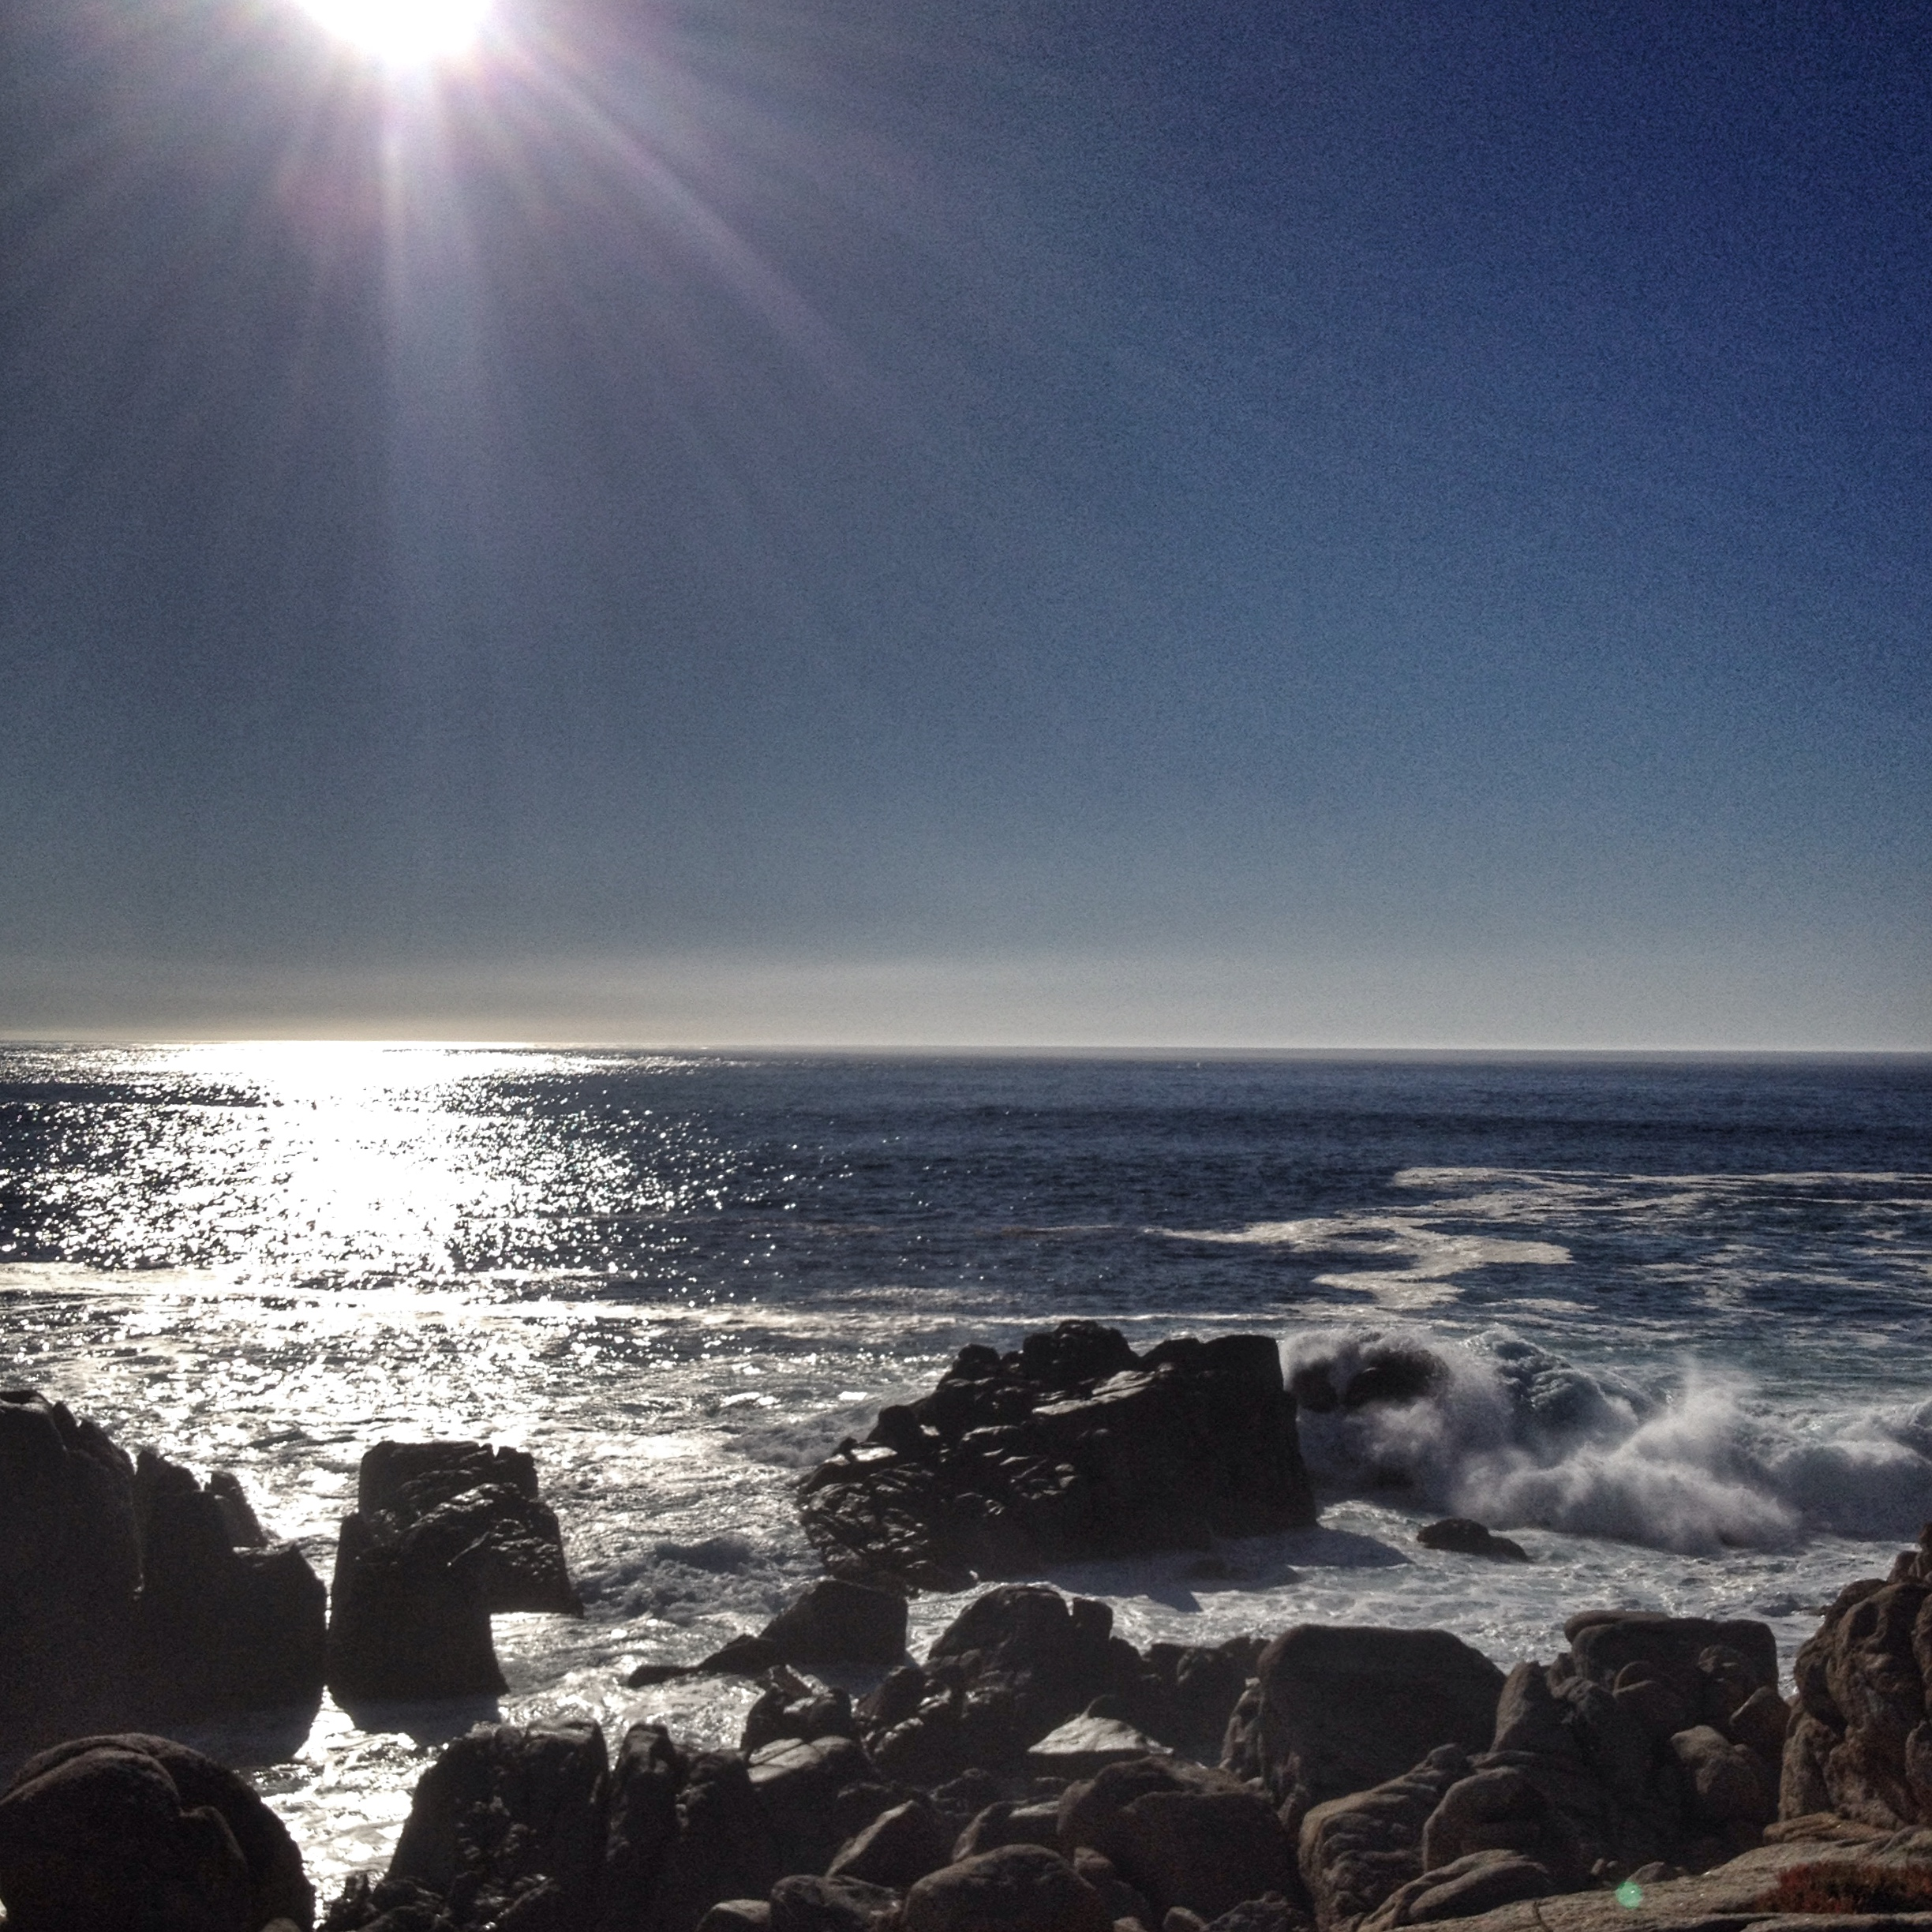 Pacific Ocean off 17 mile drive